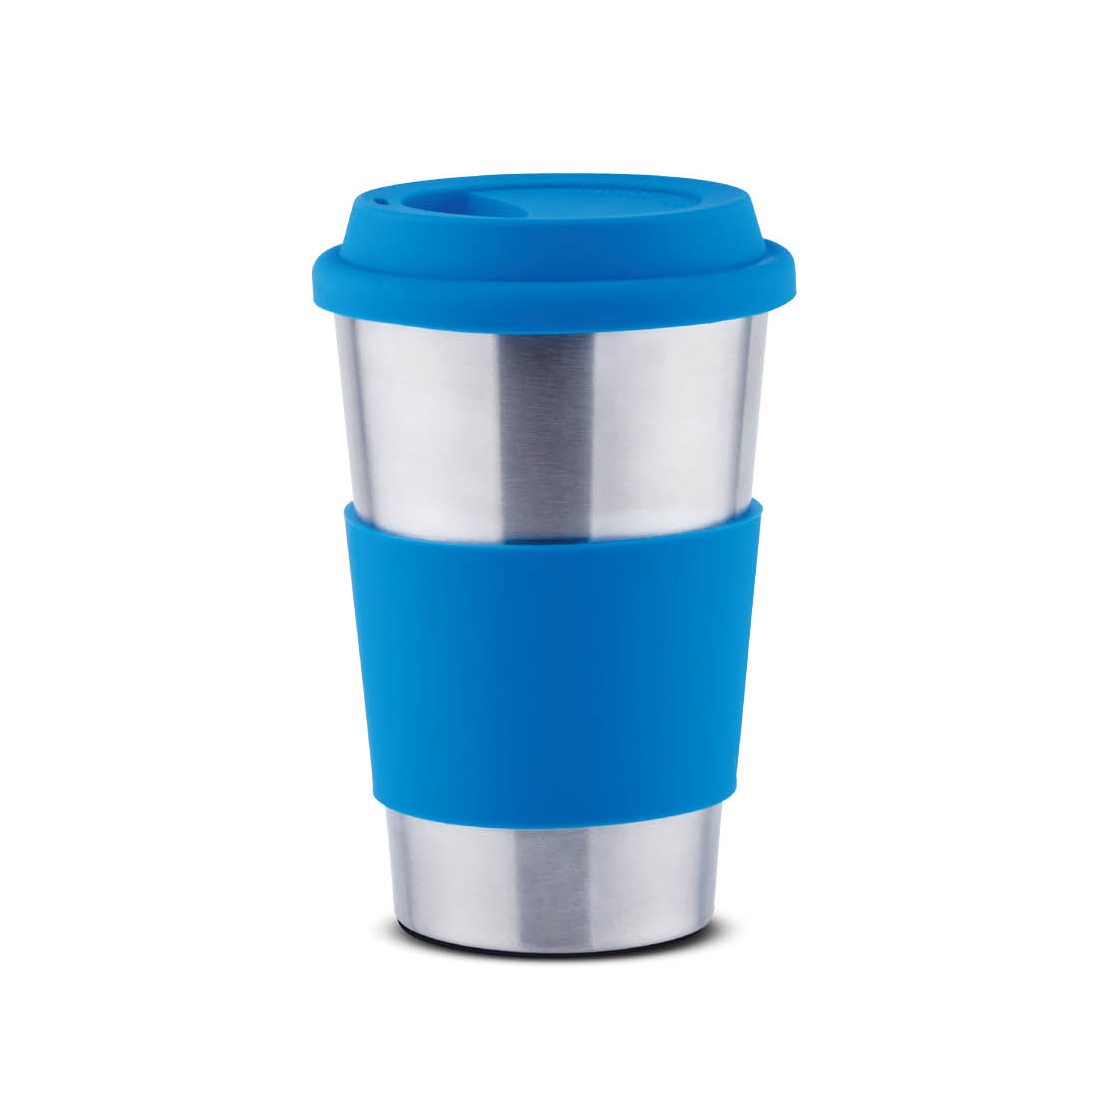 Silicone - Stainless steel mug